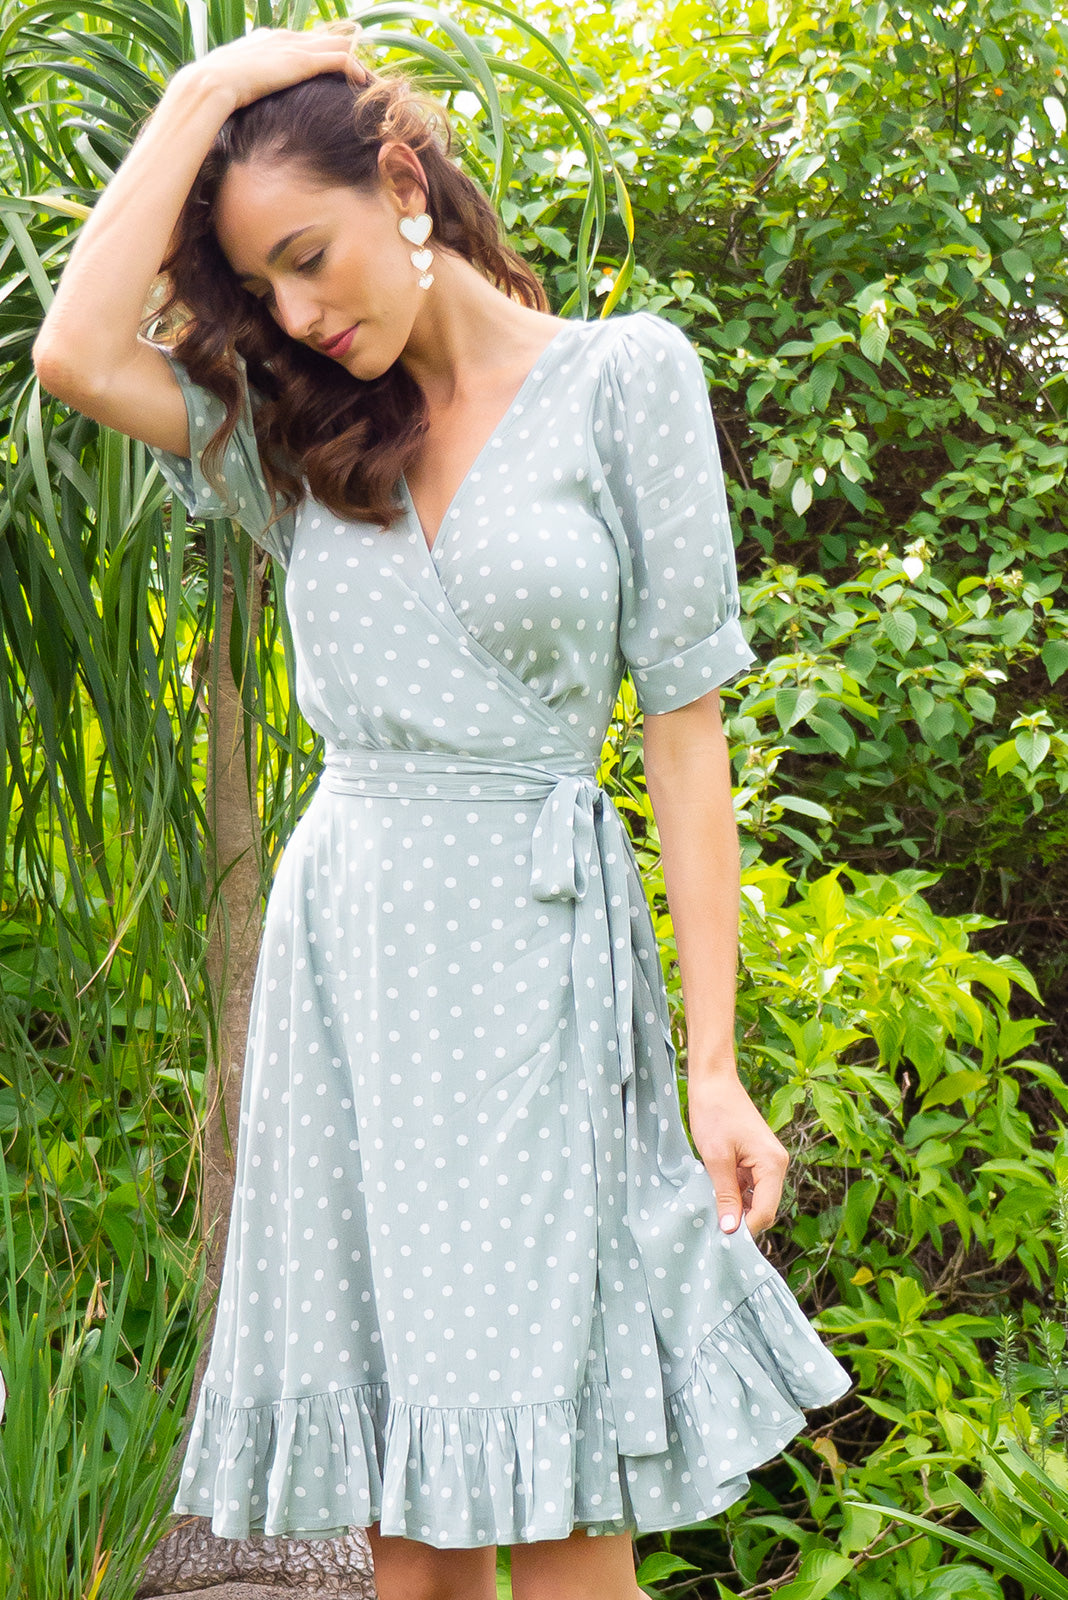 Antigua Sage Green Maxi Wrap Dress in a 1940's inspired style with cuffed midi sleeves and a delicate hemline frill in a pastel sage green spot print on crinkle woven rayon